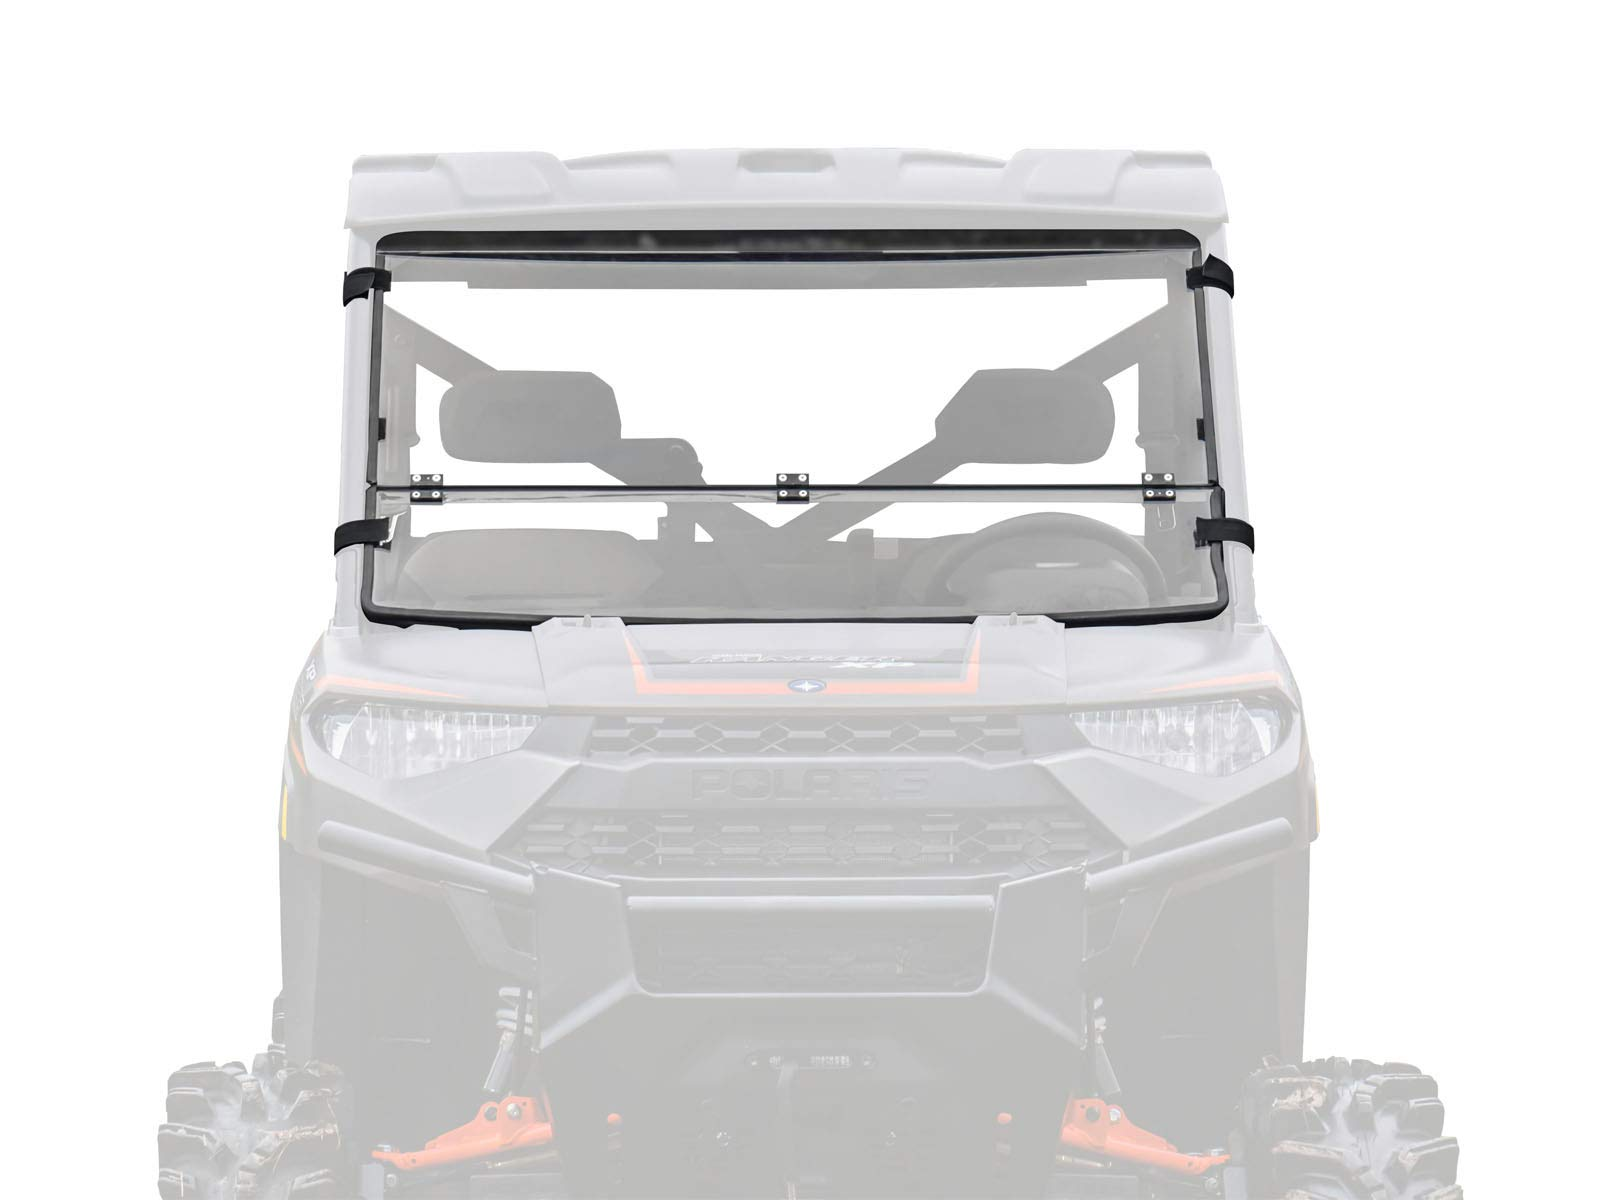 SuperATV Heavy Duty Flip/Fold Down 3-IN-1 Windshield for Polaris Ranger Full Size XP 900 / Crew (2013+) - Clear Scratch Resistant (Hard Coated) by SuperATV.com